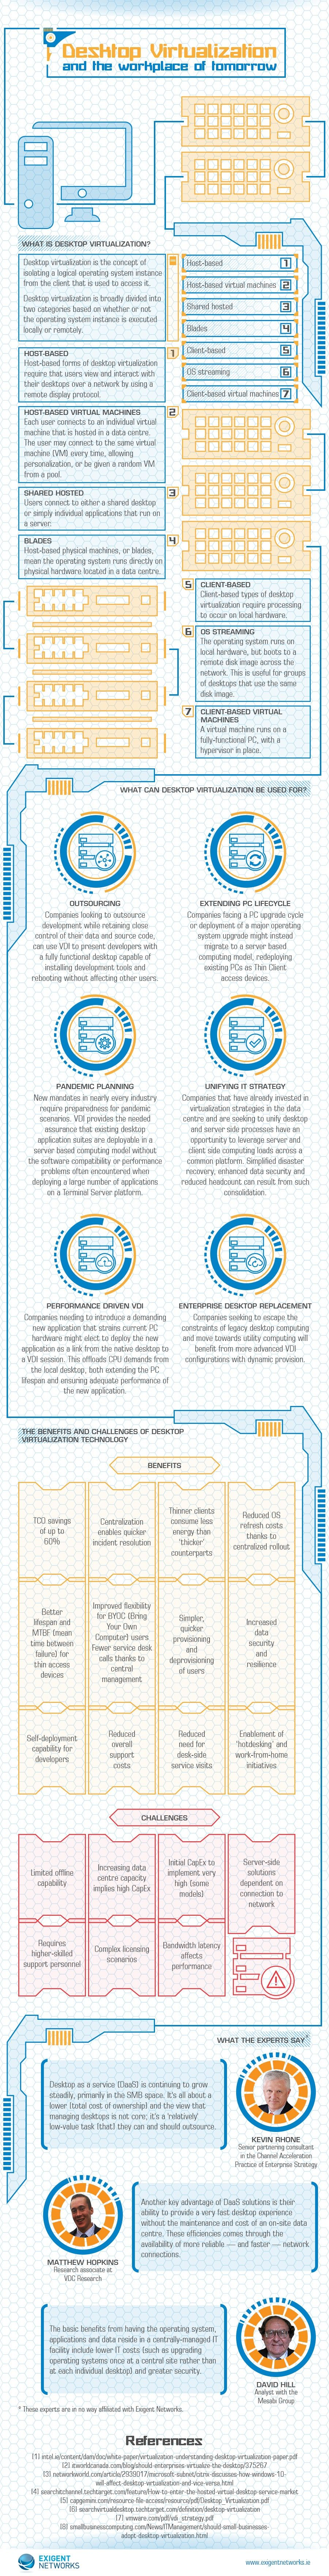 desktop-virtualization-infographic